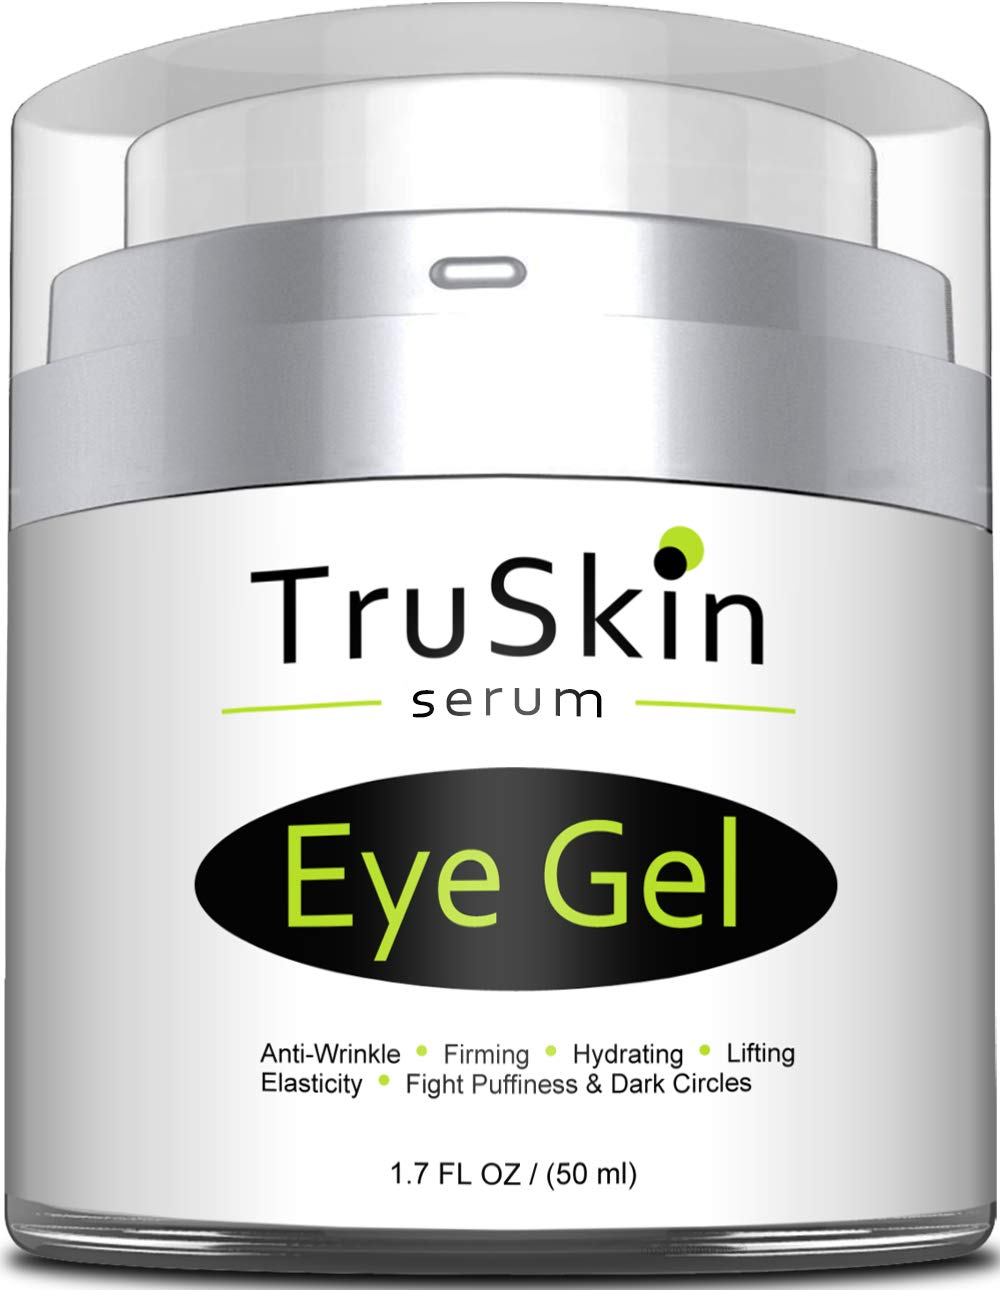 Best Eye Gel for Wrinkles, Dark Circles, Under Eye Puffy Bags, Crepe Eyes, Super Eye Cream Moisturizer Serum for Men & Women - 1.7 fl oz by TruSkin Naturals